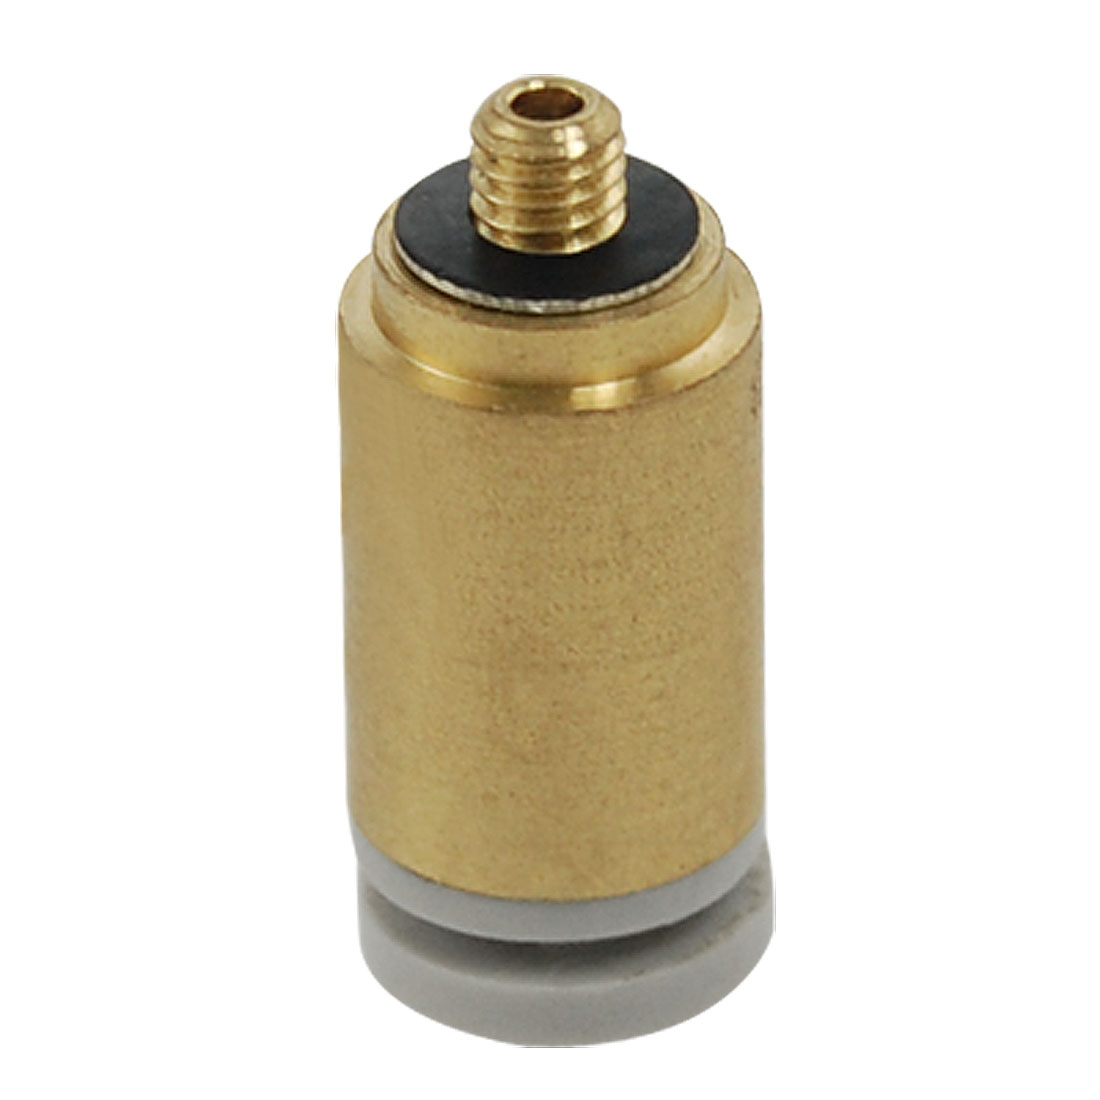 "PC4-M3 Pneumatic 3/16"" Push in Quick Fitting Tube Connector"